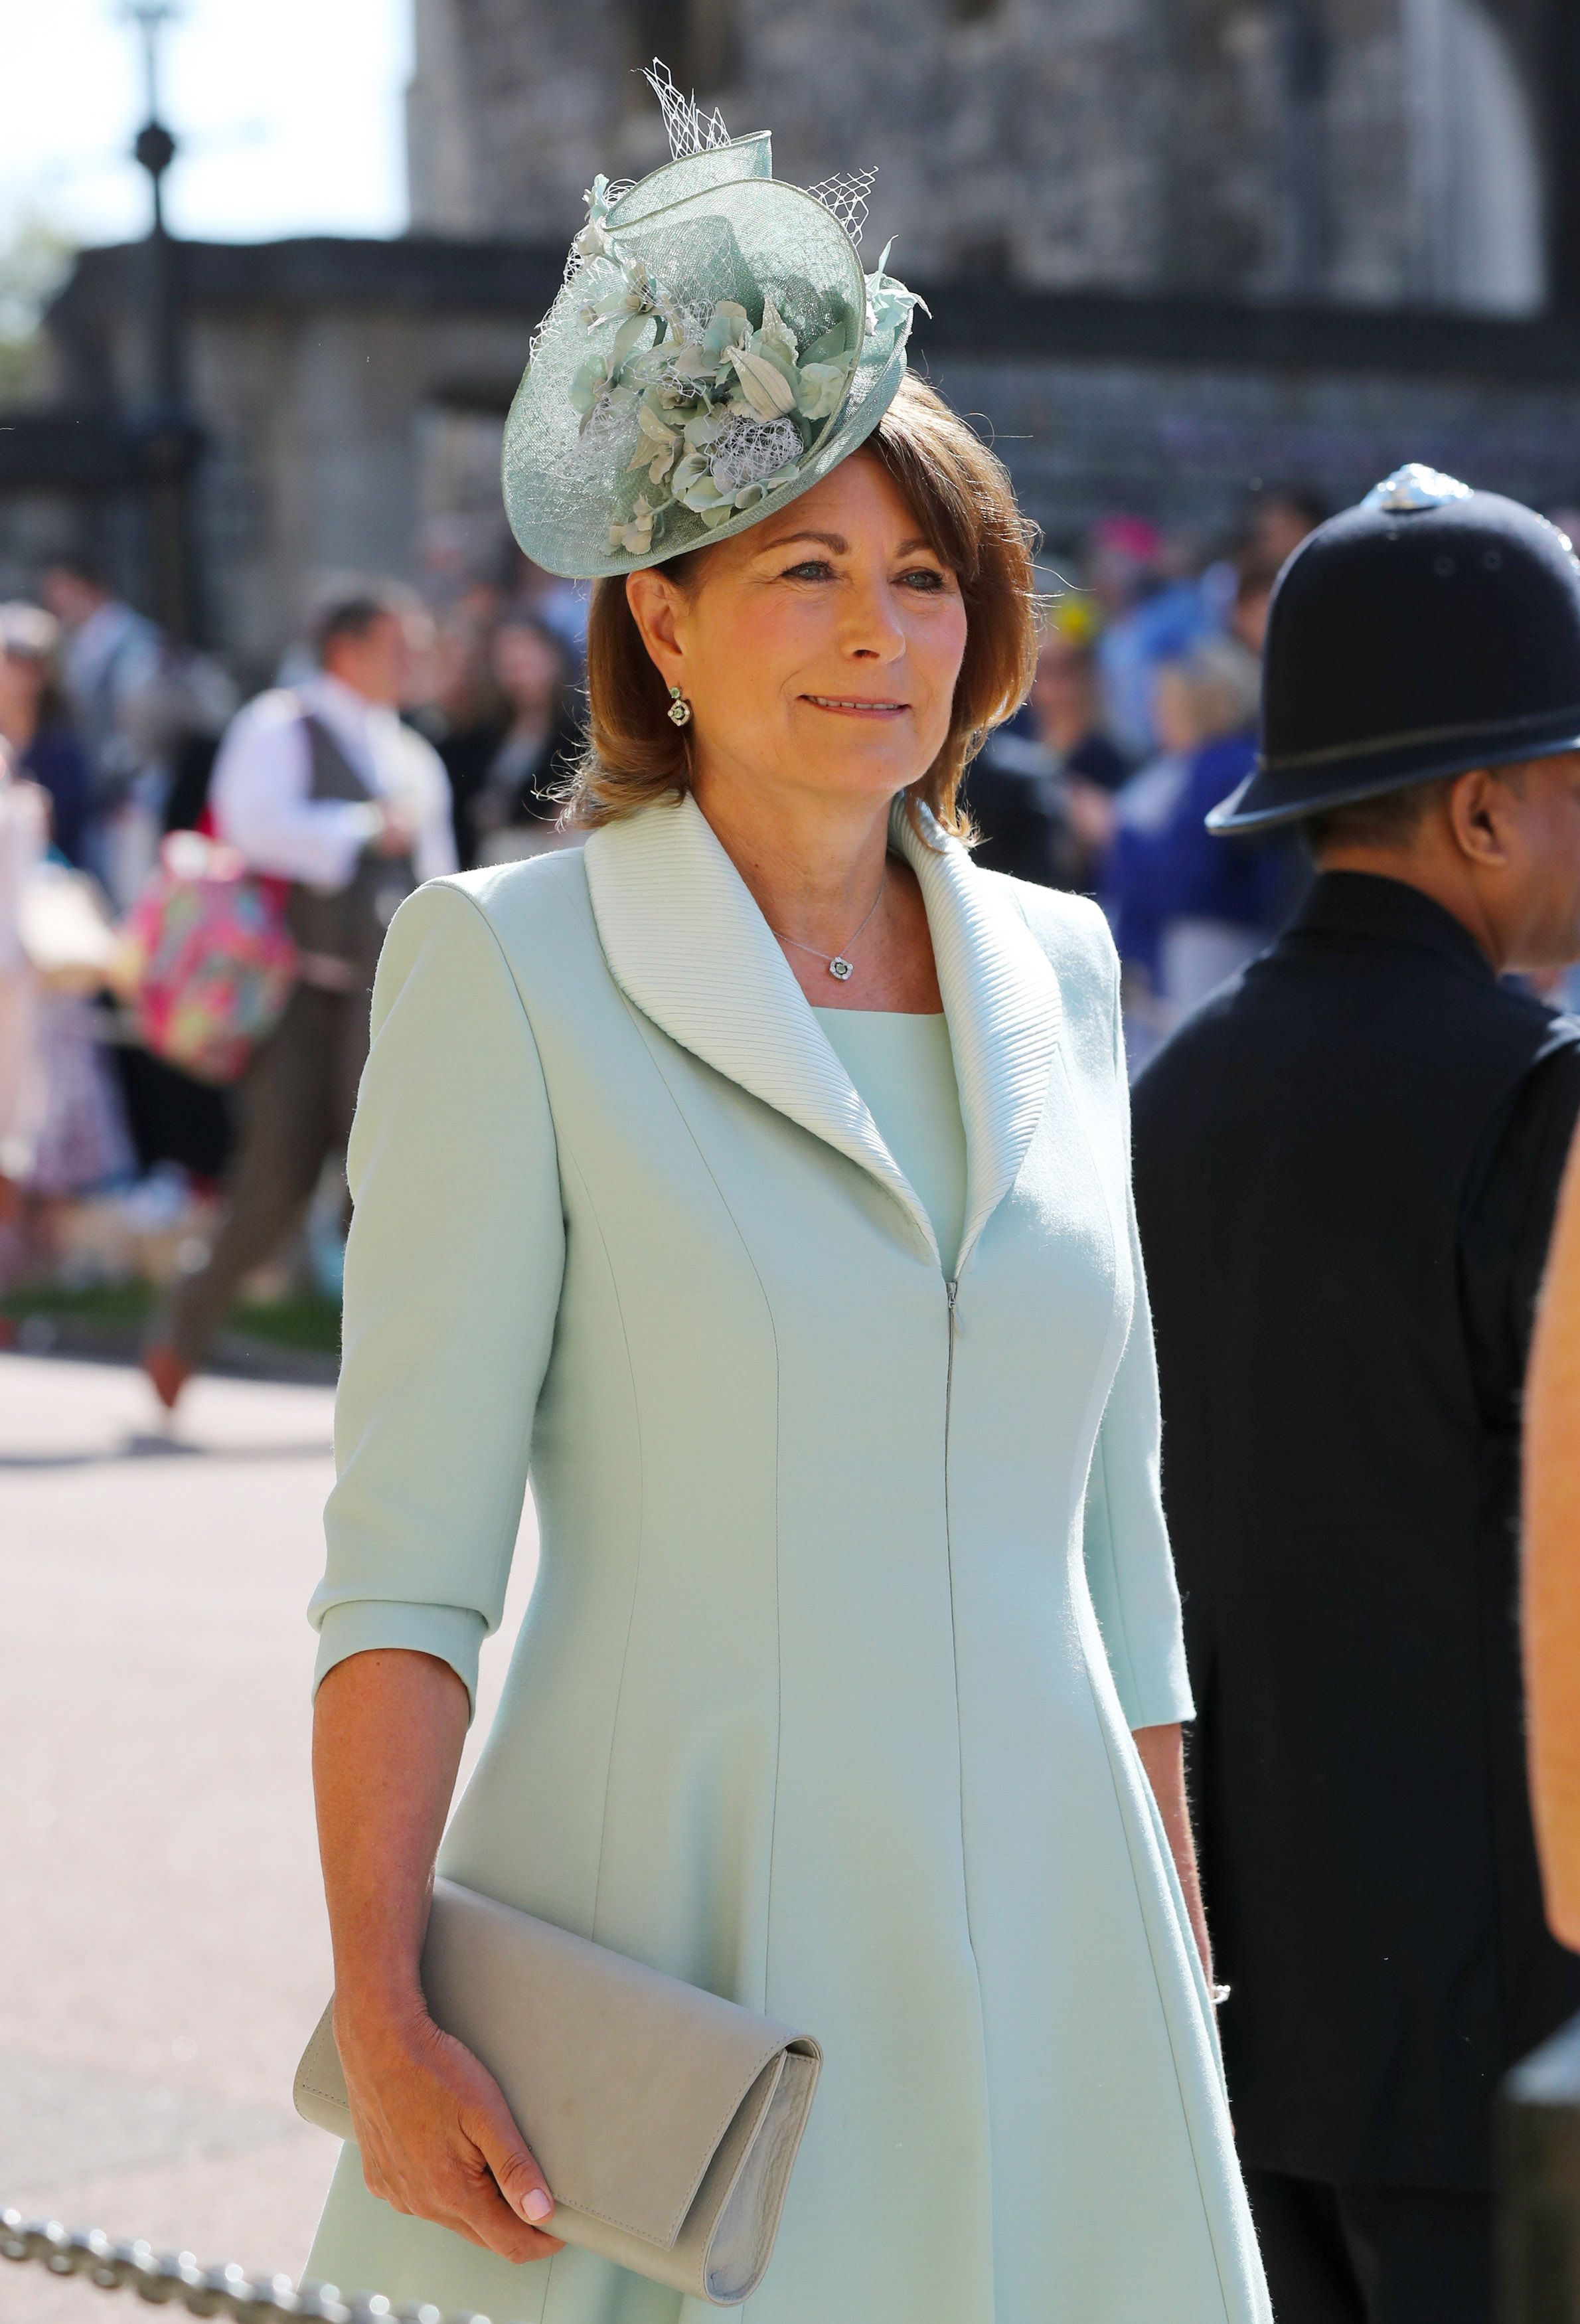 83cf2d2adb1 All Royal Wedding Hats Guests Wore At Meghan Markle And Prince Harry s  Wedding